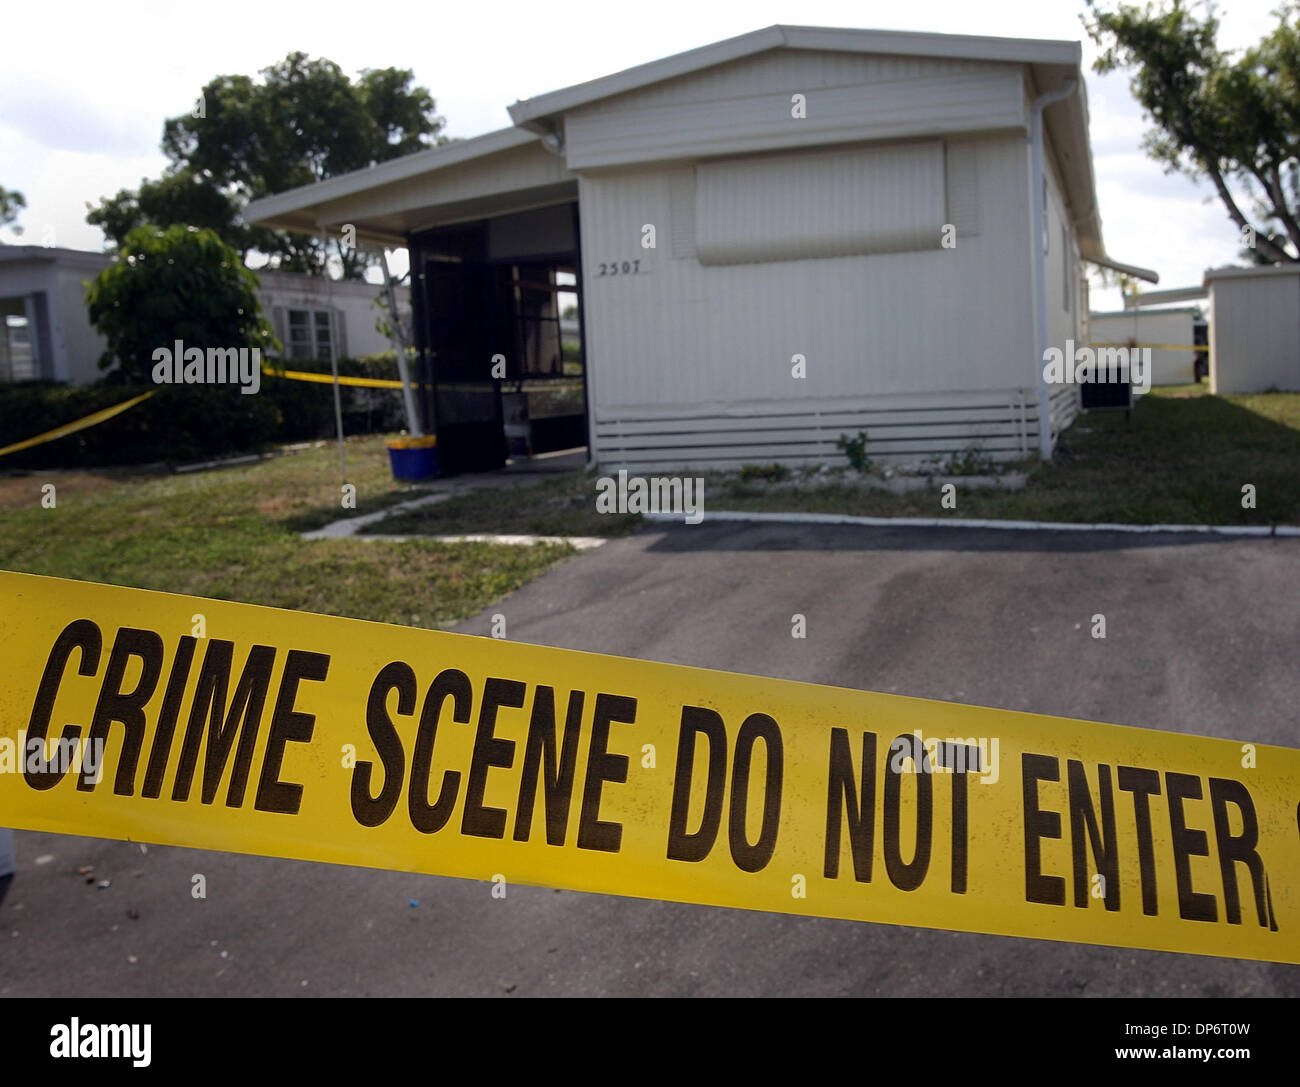 Oct 25, 2006; Boyton Beach, FL, USA; The Palm Beach County Sheriffs Department was investigating a suspicious death in this  the mobile home at 2507 N.W. 22nd Street, Wednesday. Mandatory Credit: Photo by Bob Shanley/Palm Beach Post/ZUMA Press. (©) Copyright 2006 by Palm Beach Post - Stock Image